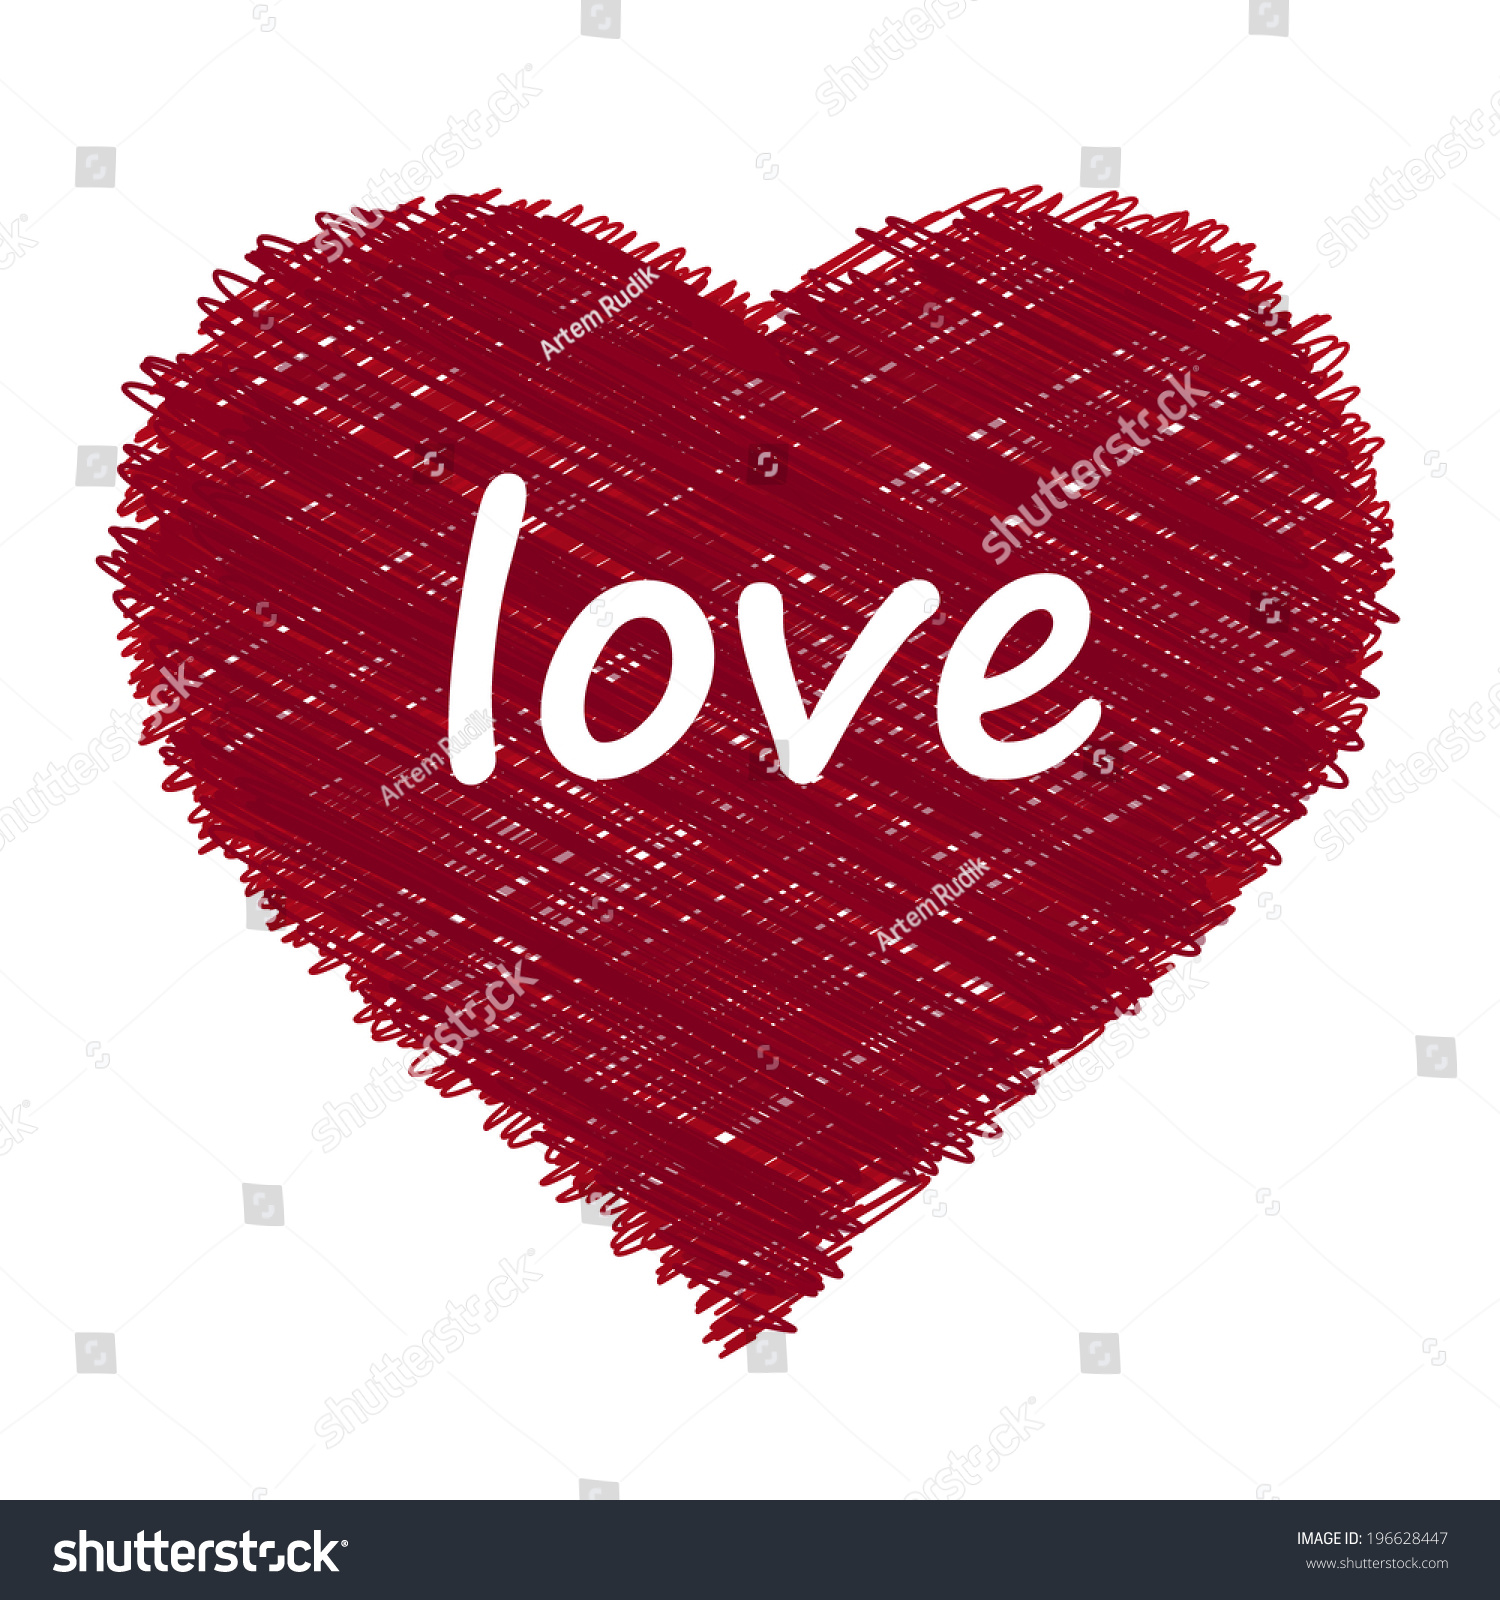 Heart pencil drawing sketching circle scribble effect vector elements for you design